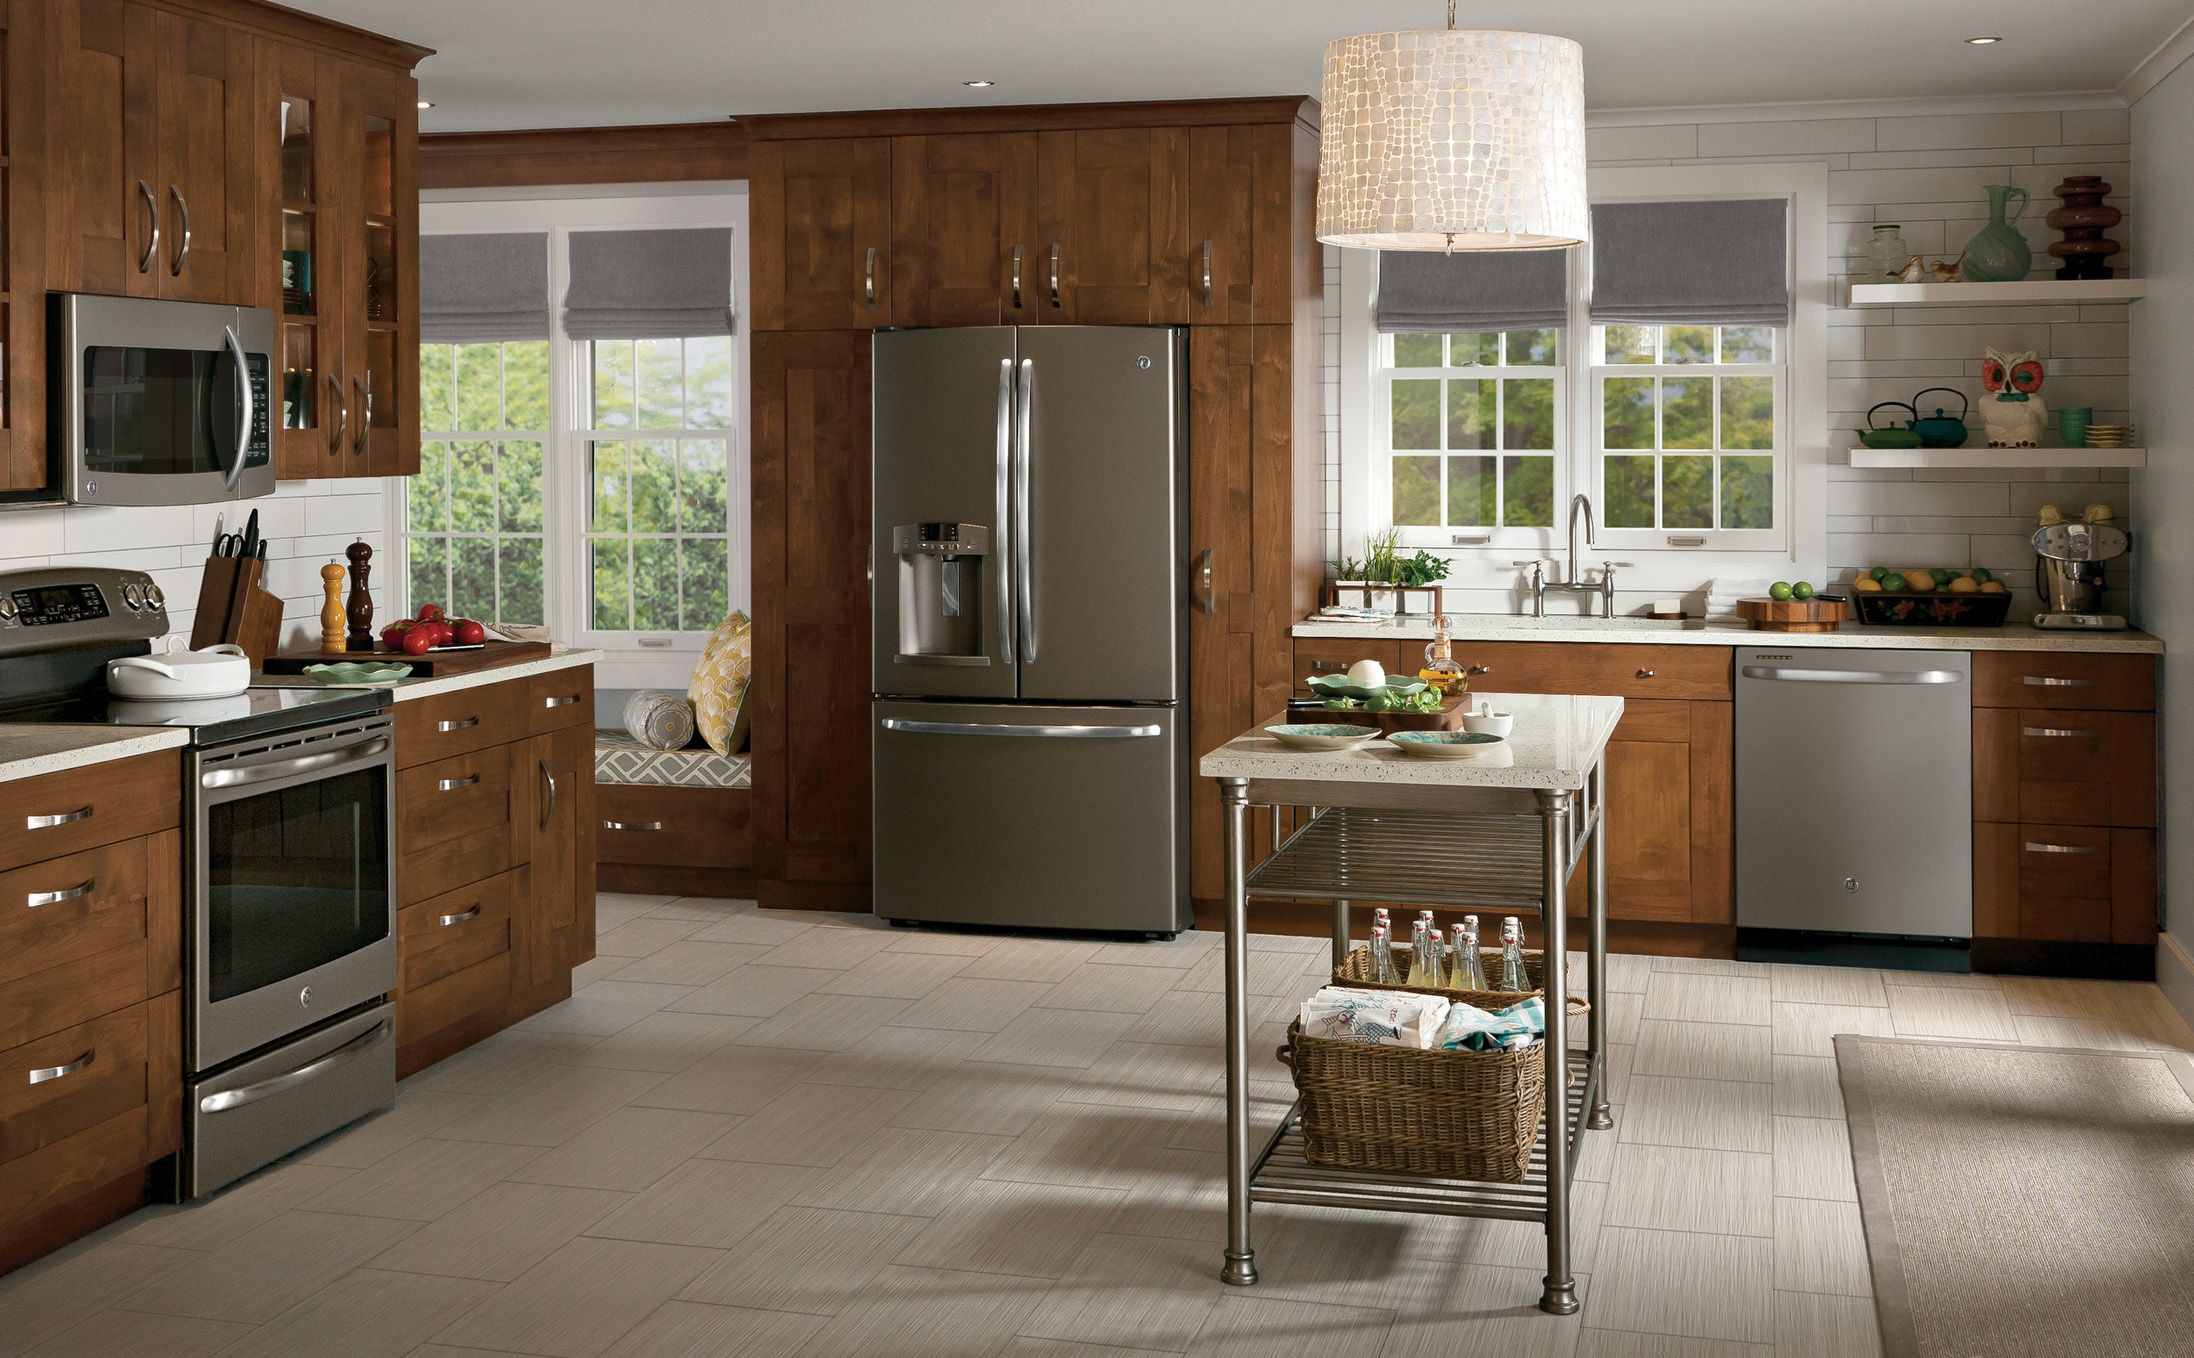 Slate Country Kitchen Design GE Appliances